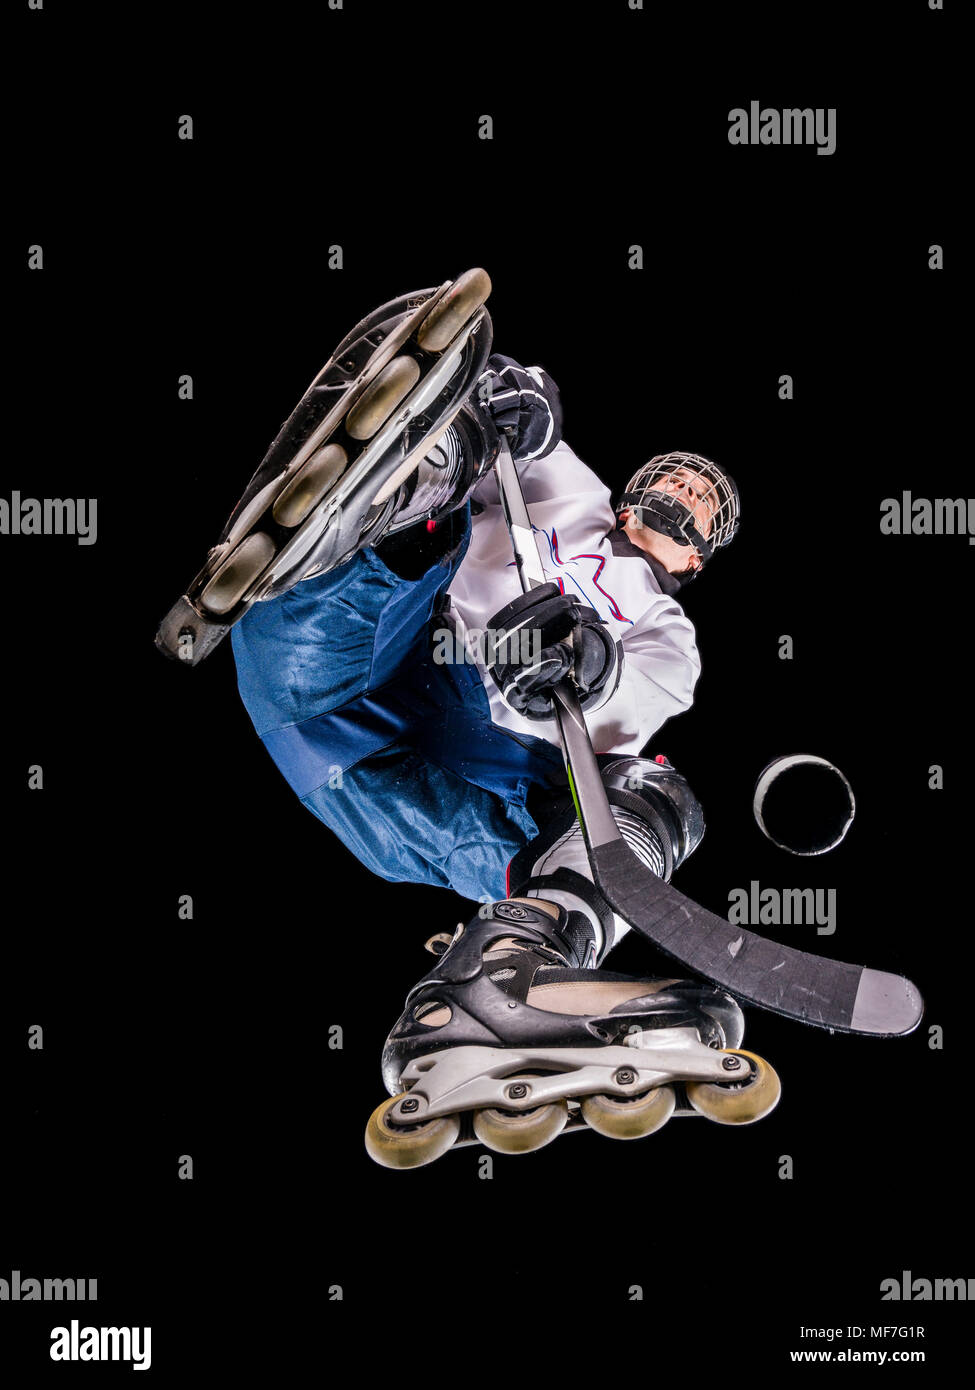 Athlete playing roller hockey, view from below - Stock Image